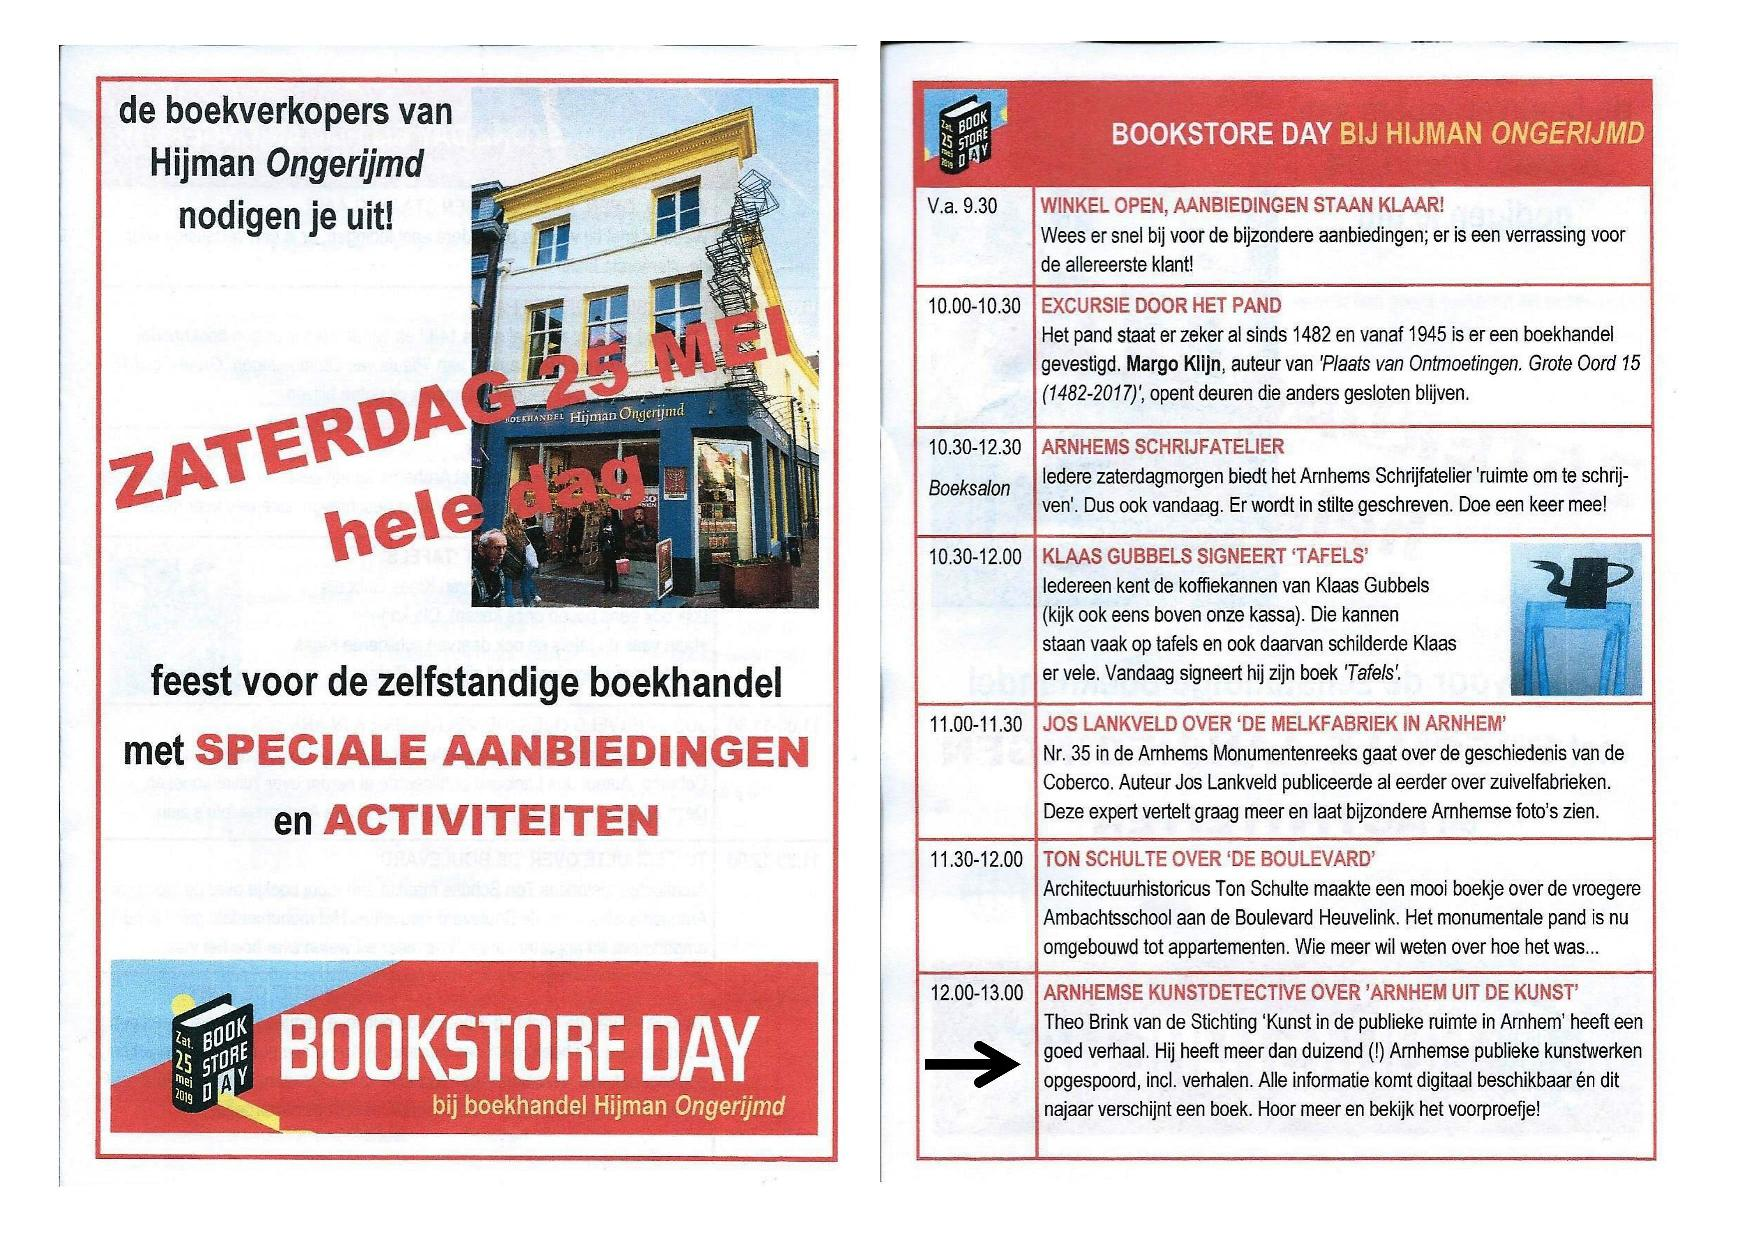 Bookstore Day 2019